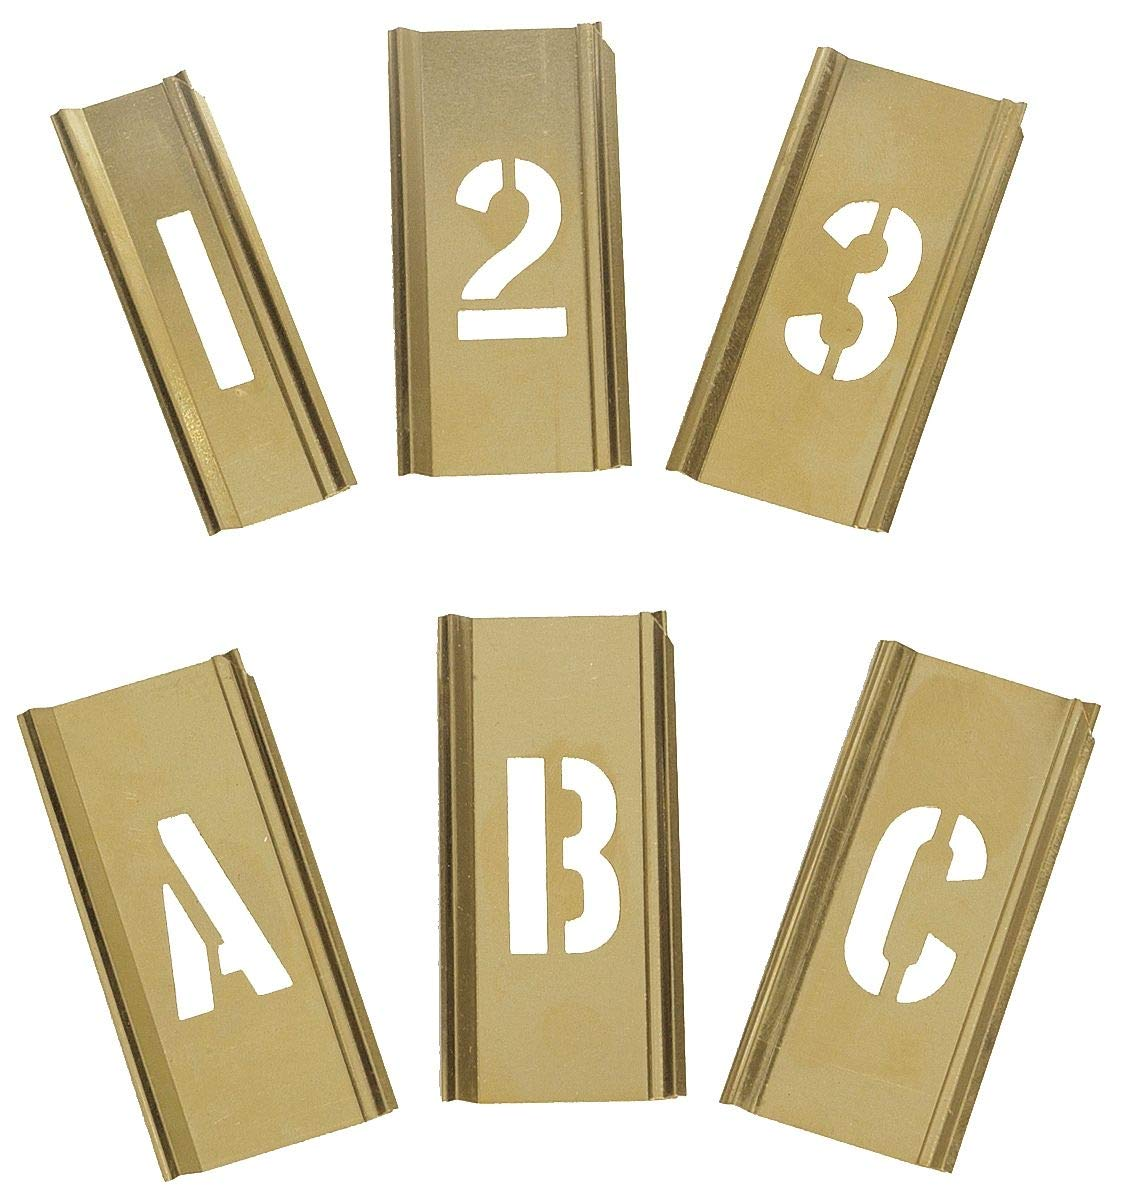 Interlocking Stencil, Letters and Numbers, 1'', Brass, 1 EA - 3W647 by Top Brand (Image #1)